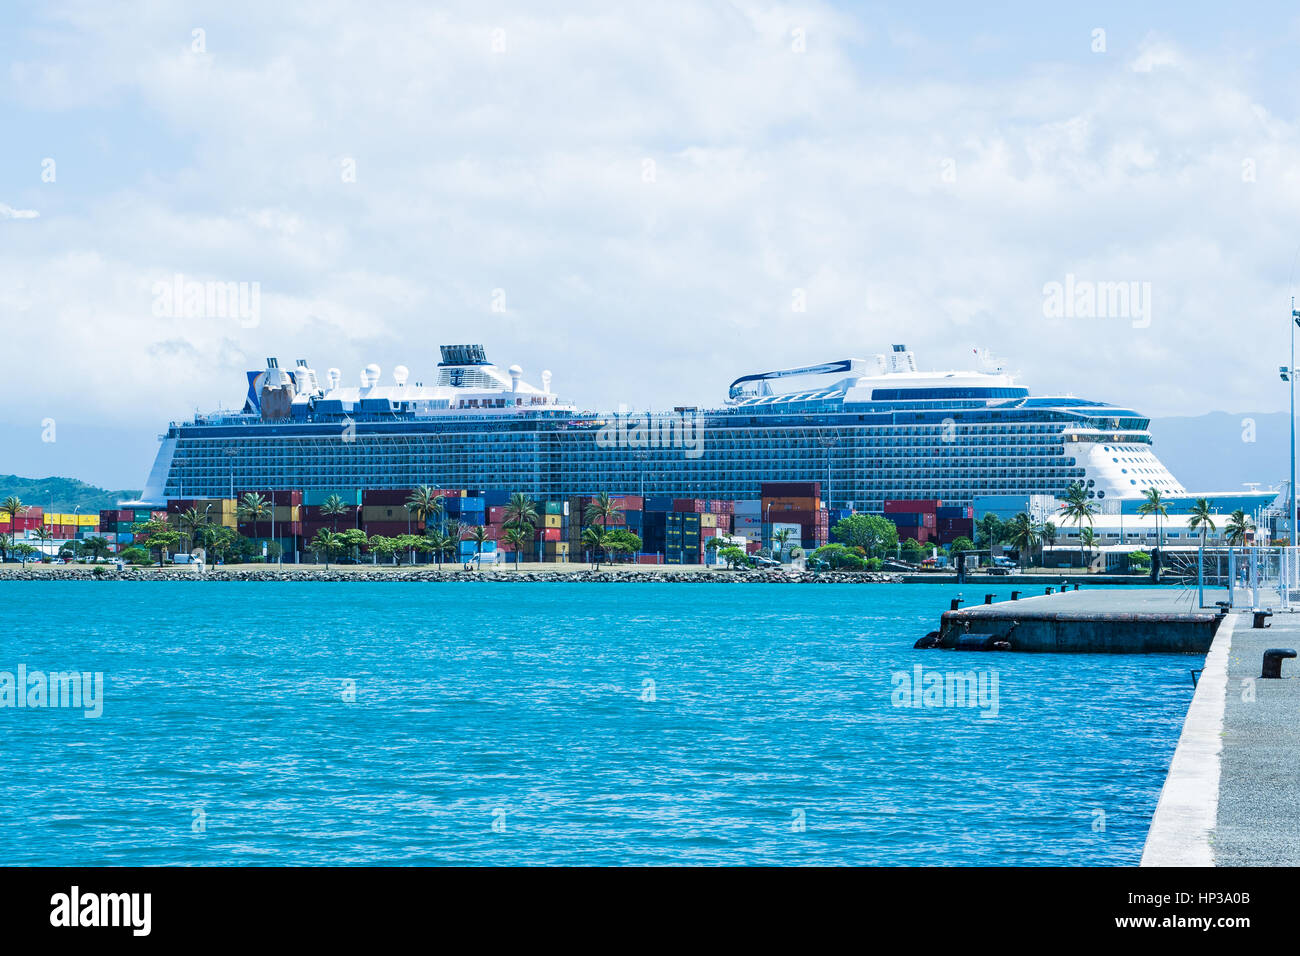 Ovation of the Seas in Noumea - Stock Image